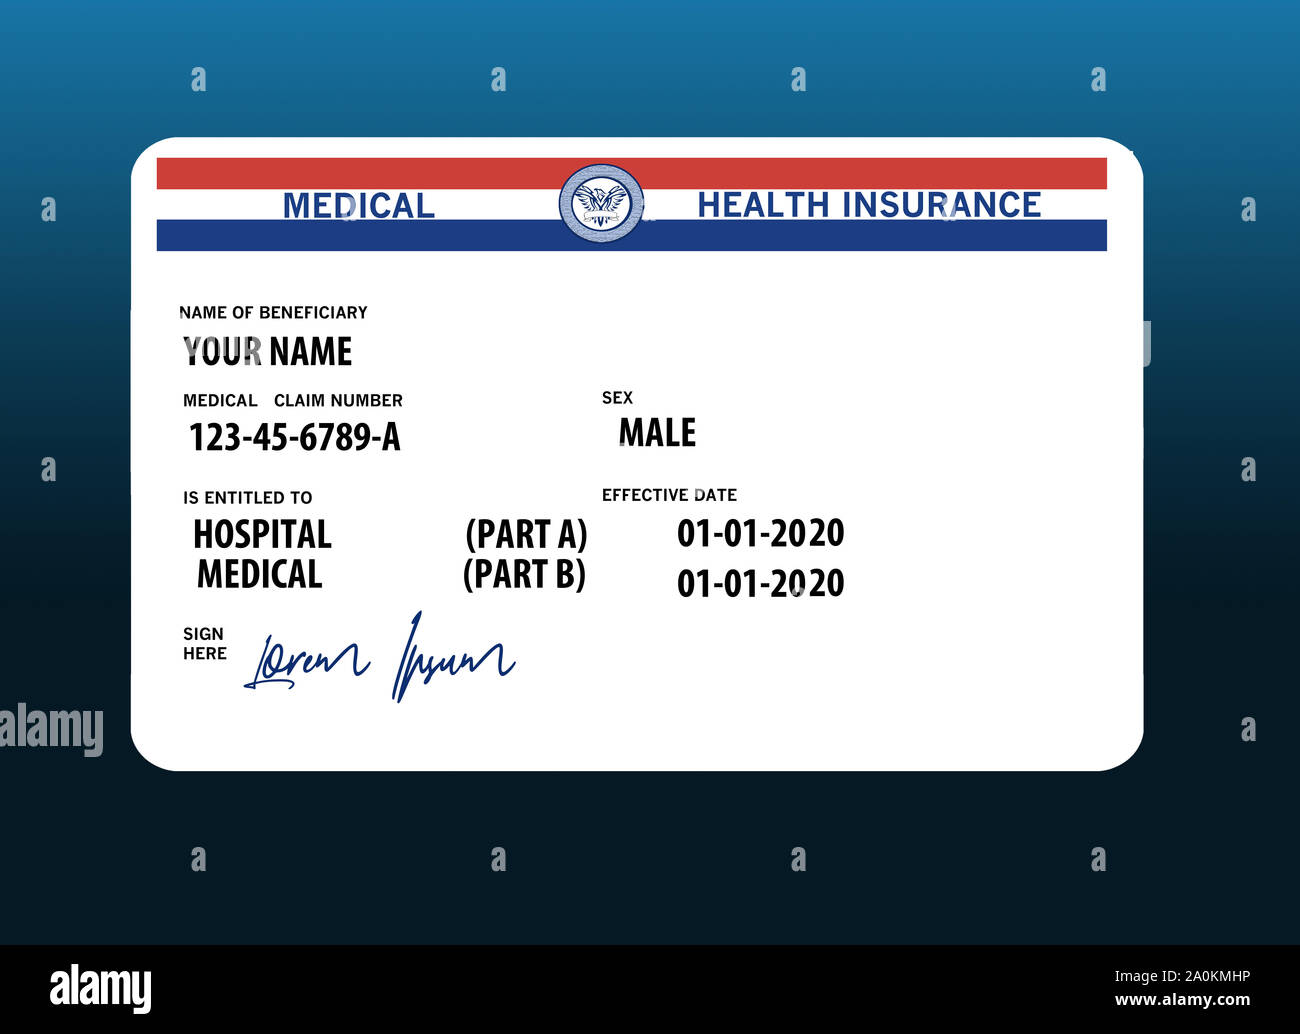 New Medicare Card 2020.Here Is A Mock Generic 2020 Medicare Health Insurance Card